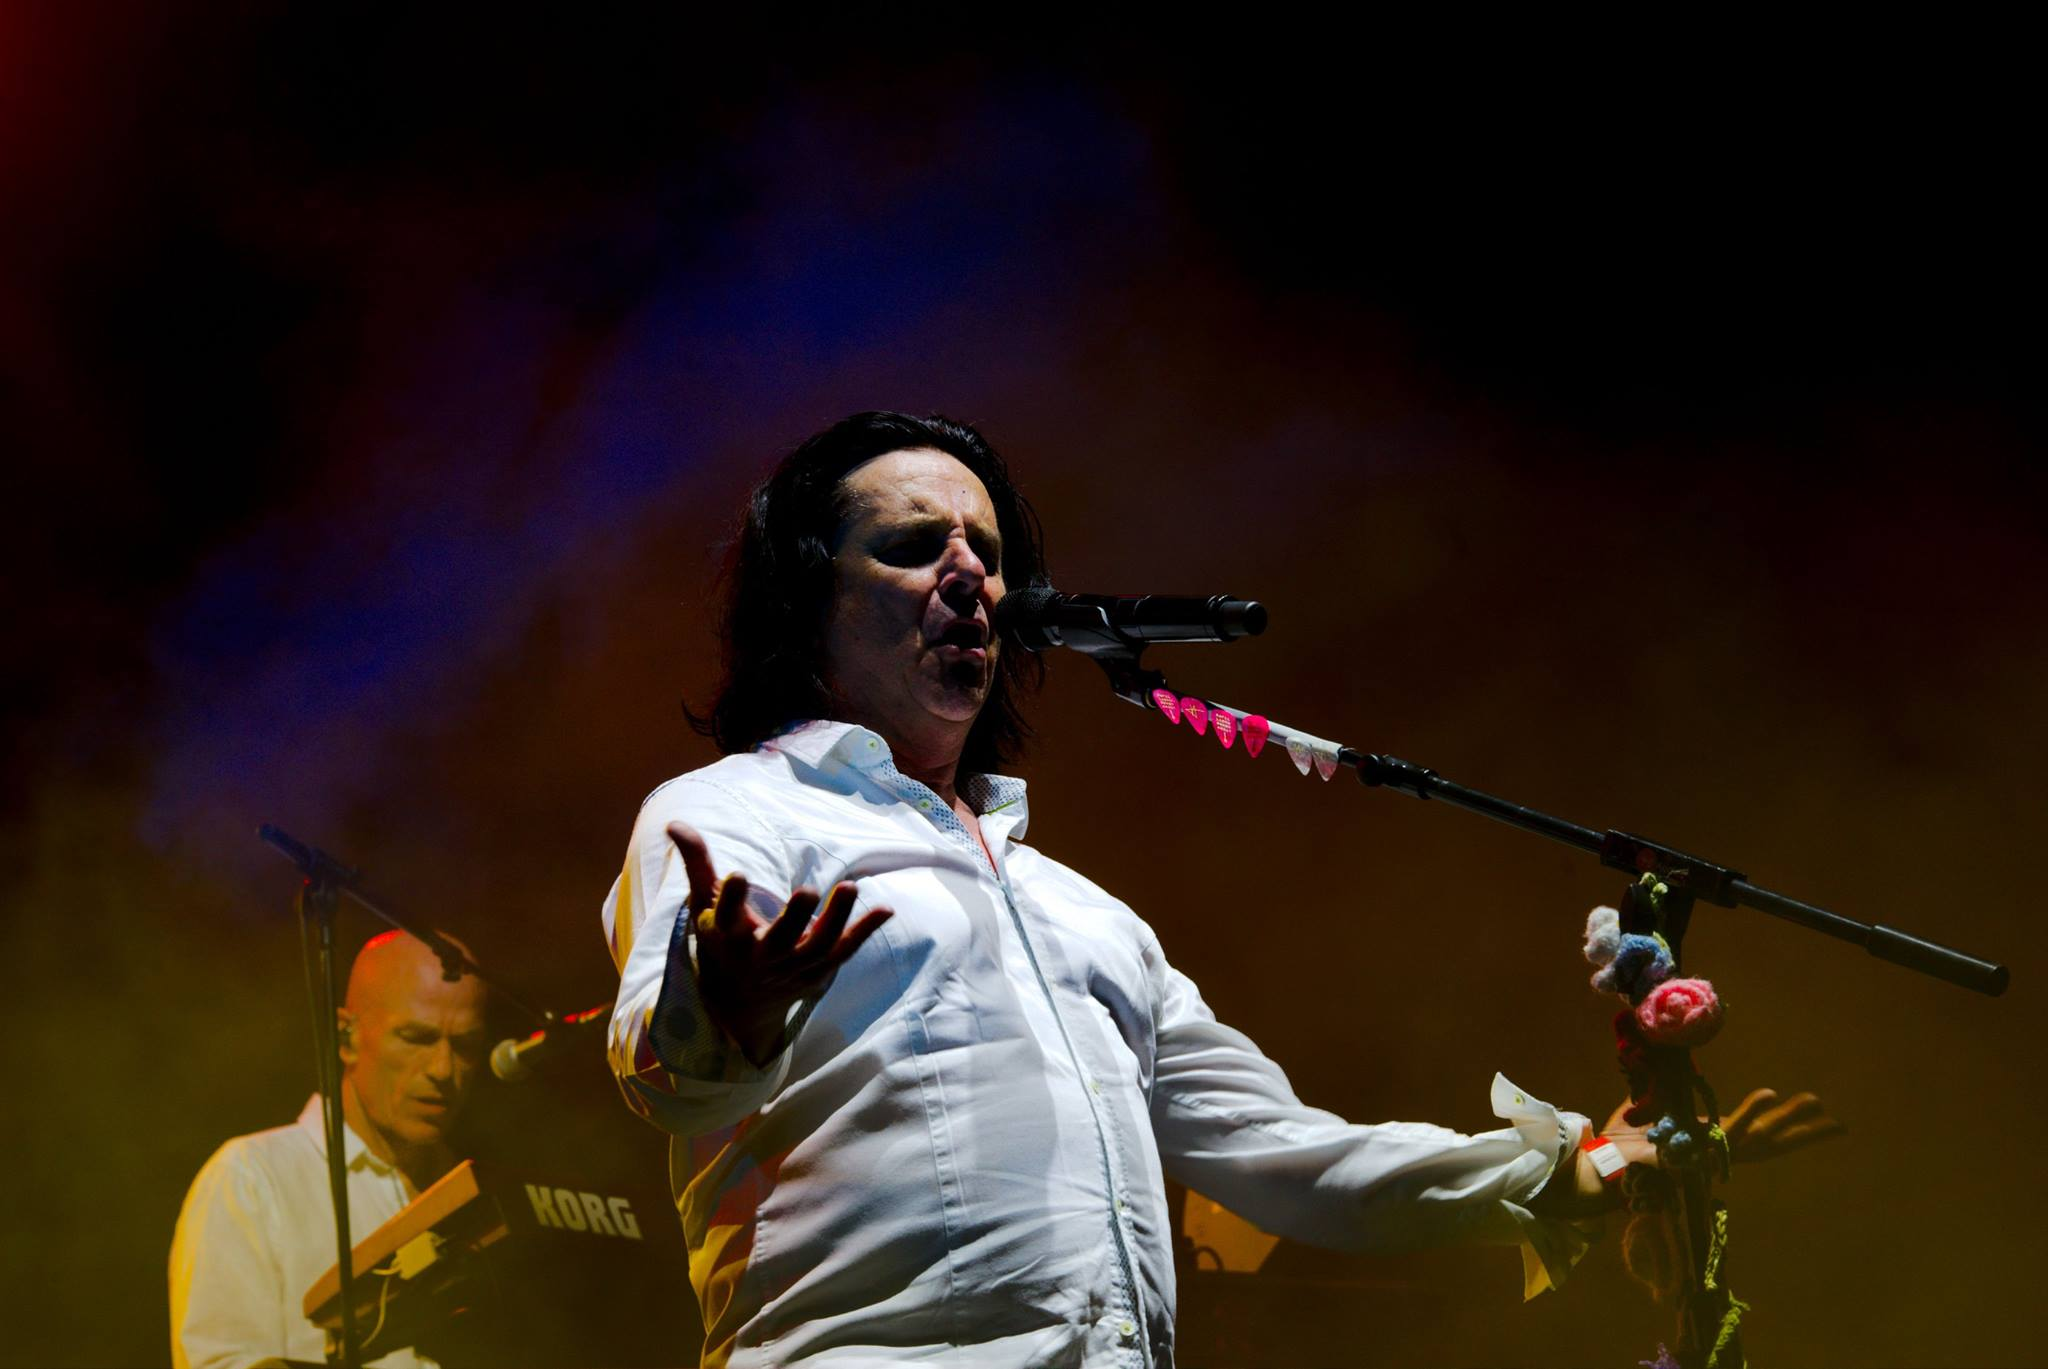 Marillion @ Be Prog My Friend, Barcelona, 30 juni 2017